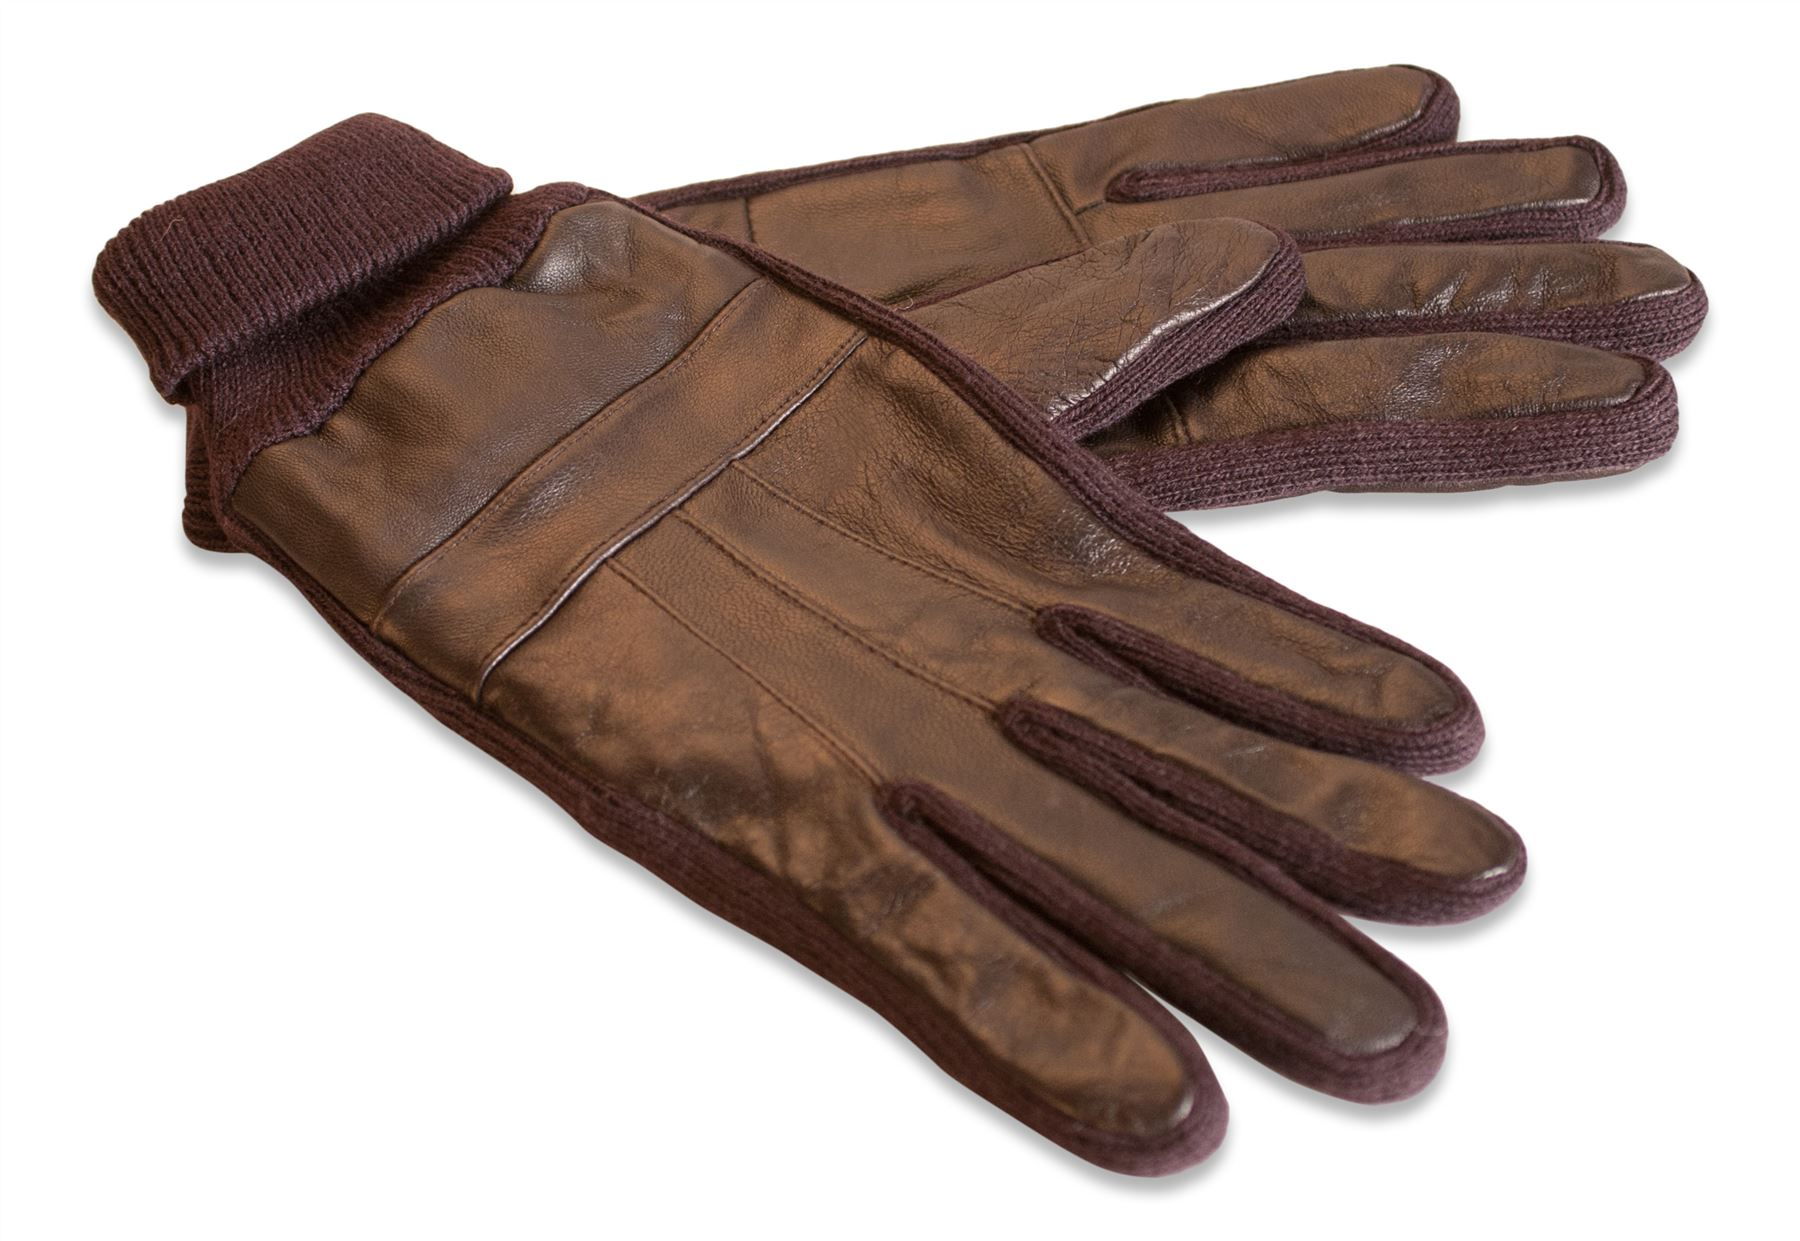 Mens leather gloves with cuff - Quivano Mens Real Leather Gloves Knitted Elasticated Cuff